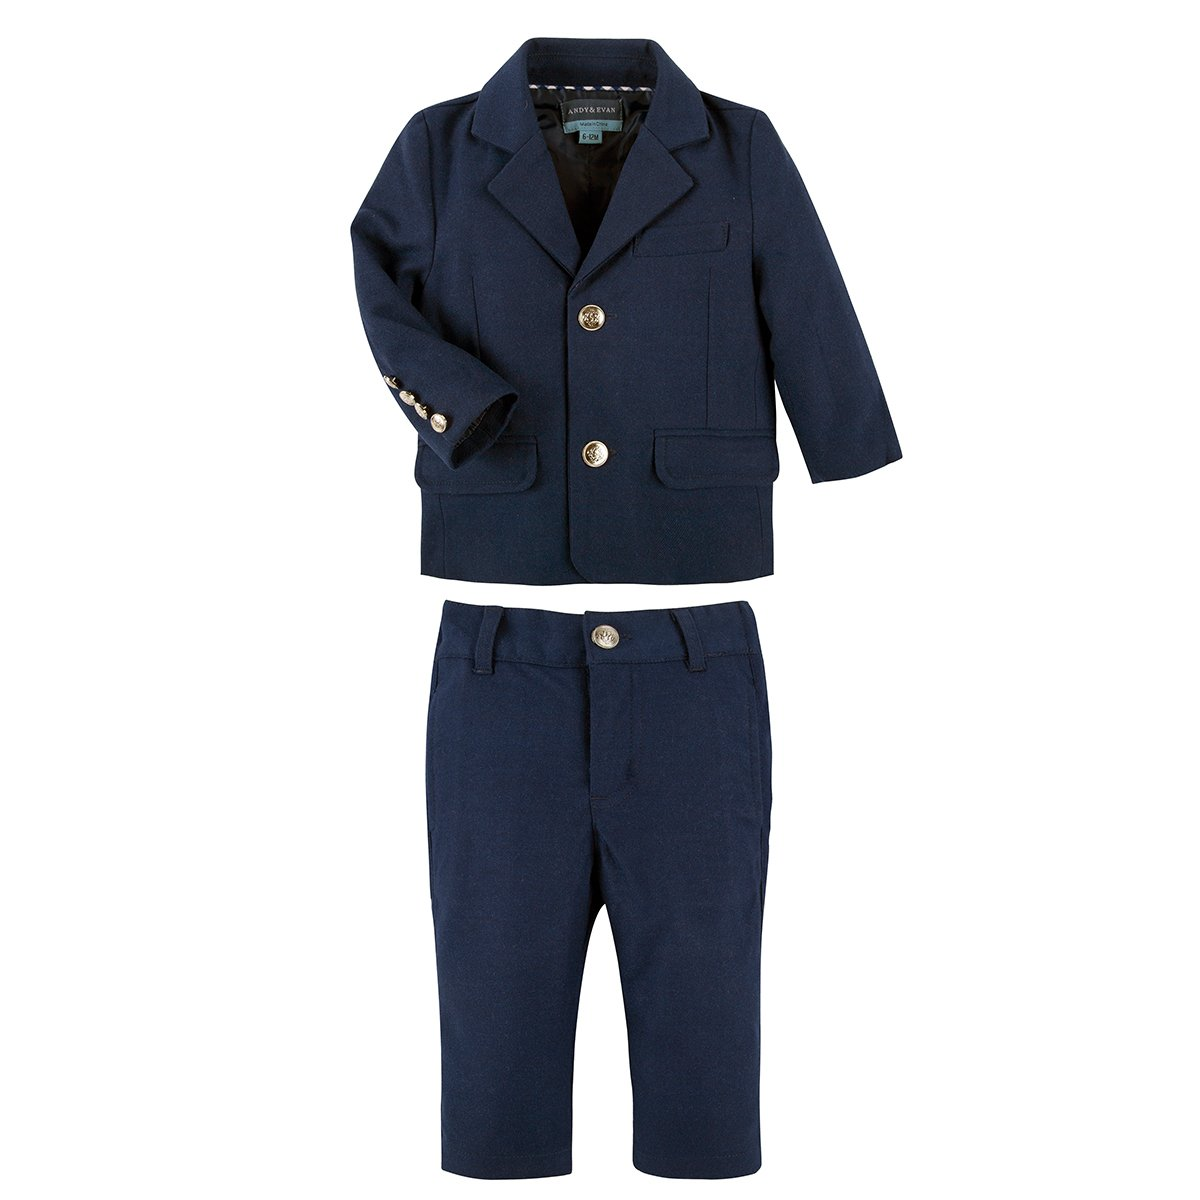 Andy & Evan New Baby Boys Navy Classic Herringbone 2 Piece Suit Set For Kids - Long Sleeves Fashion Dress For Toddler, 2T